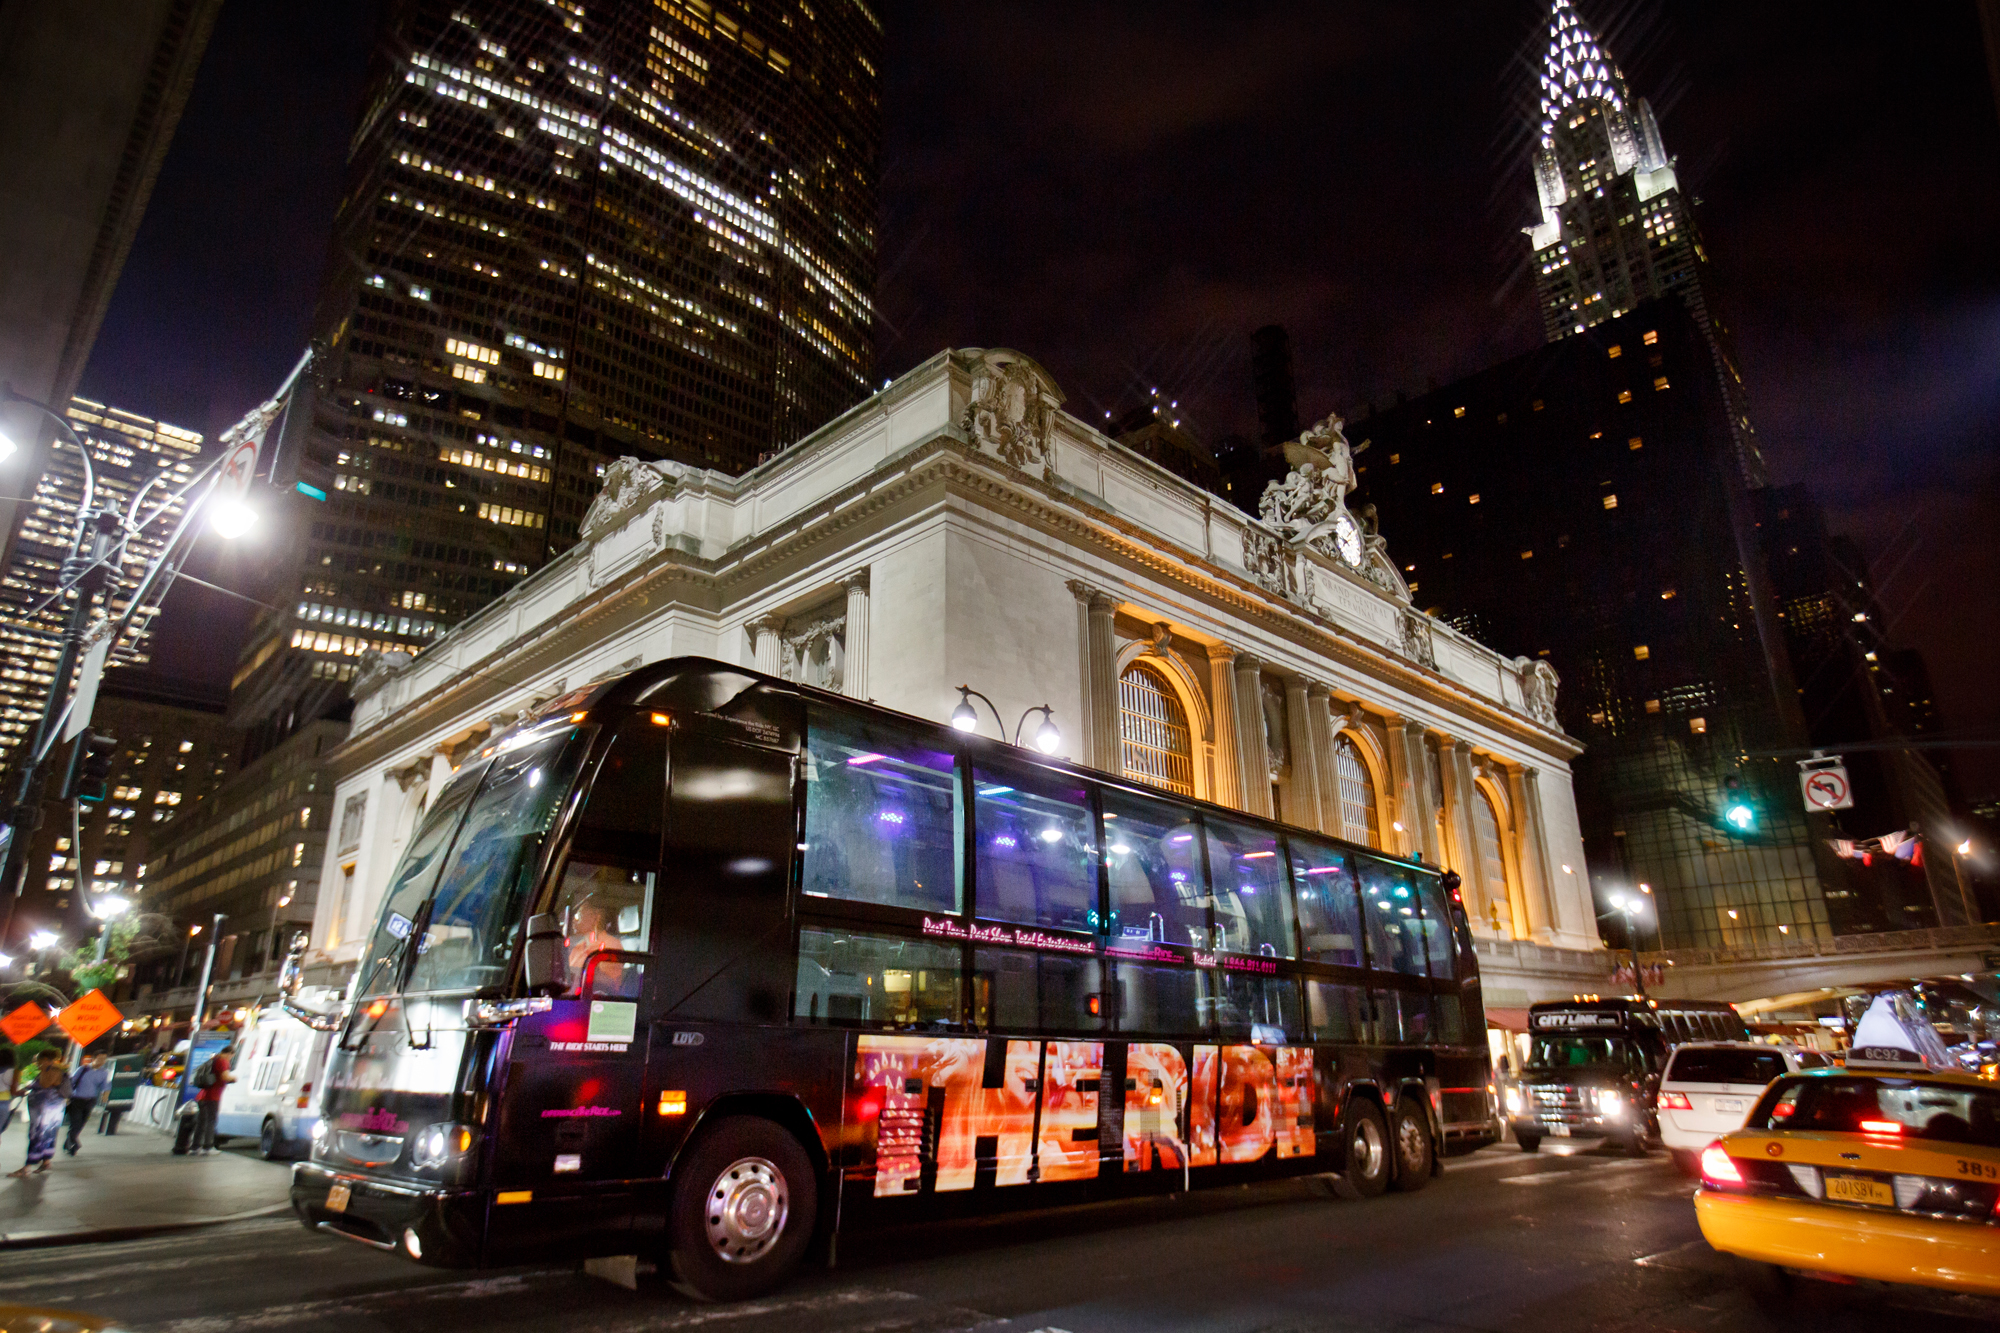 The Ride in New York voor Grand Central